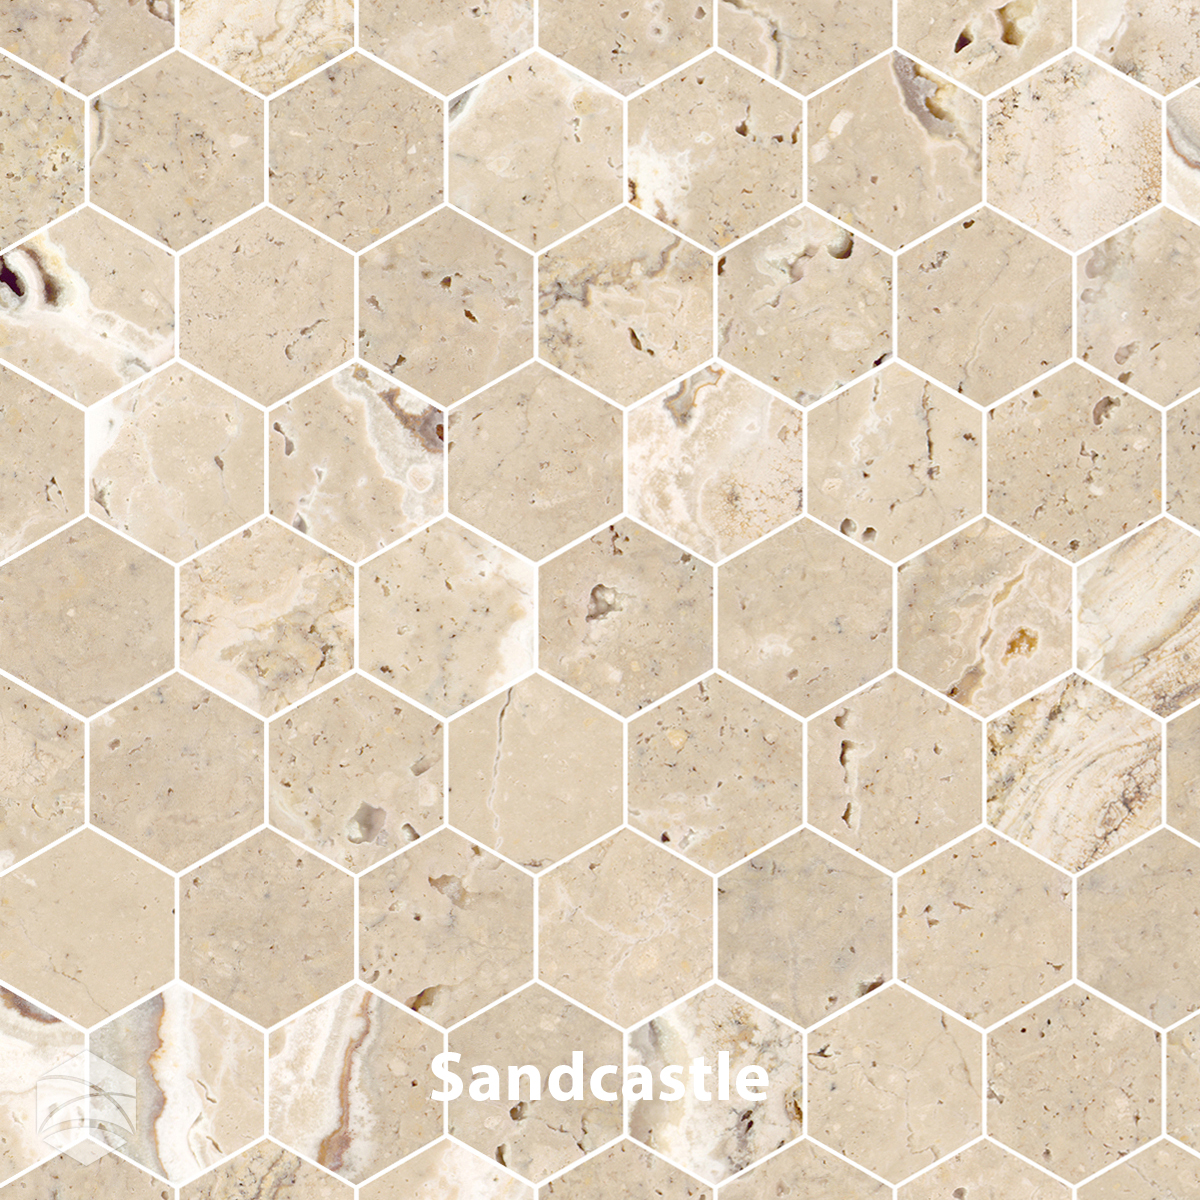 Sandcastle_2 in hex_V2_12x12.jpg